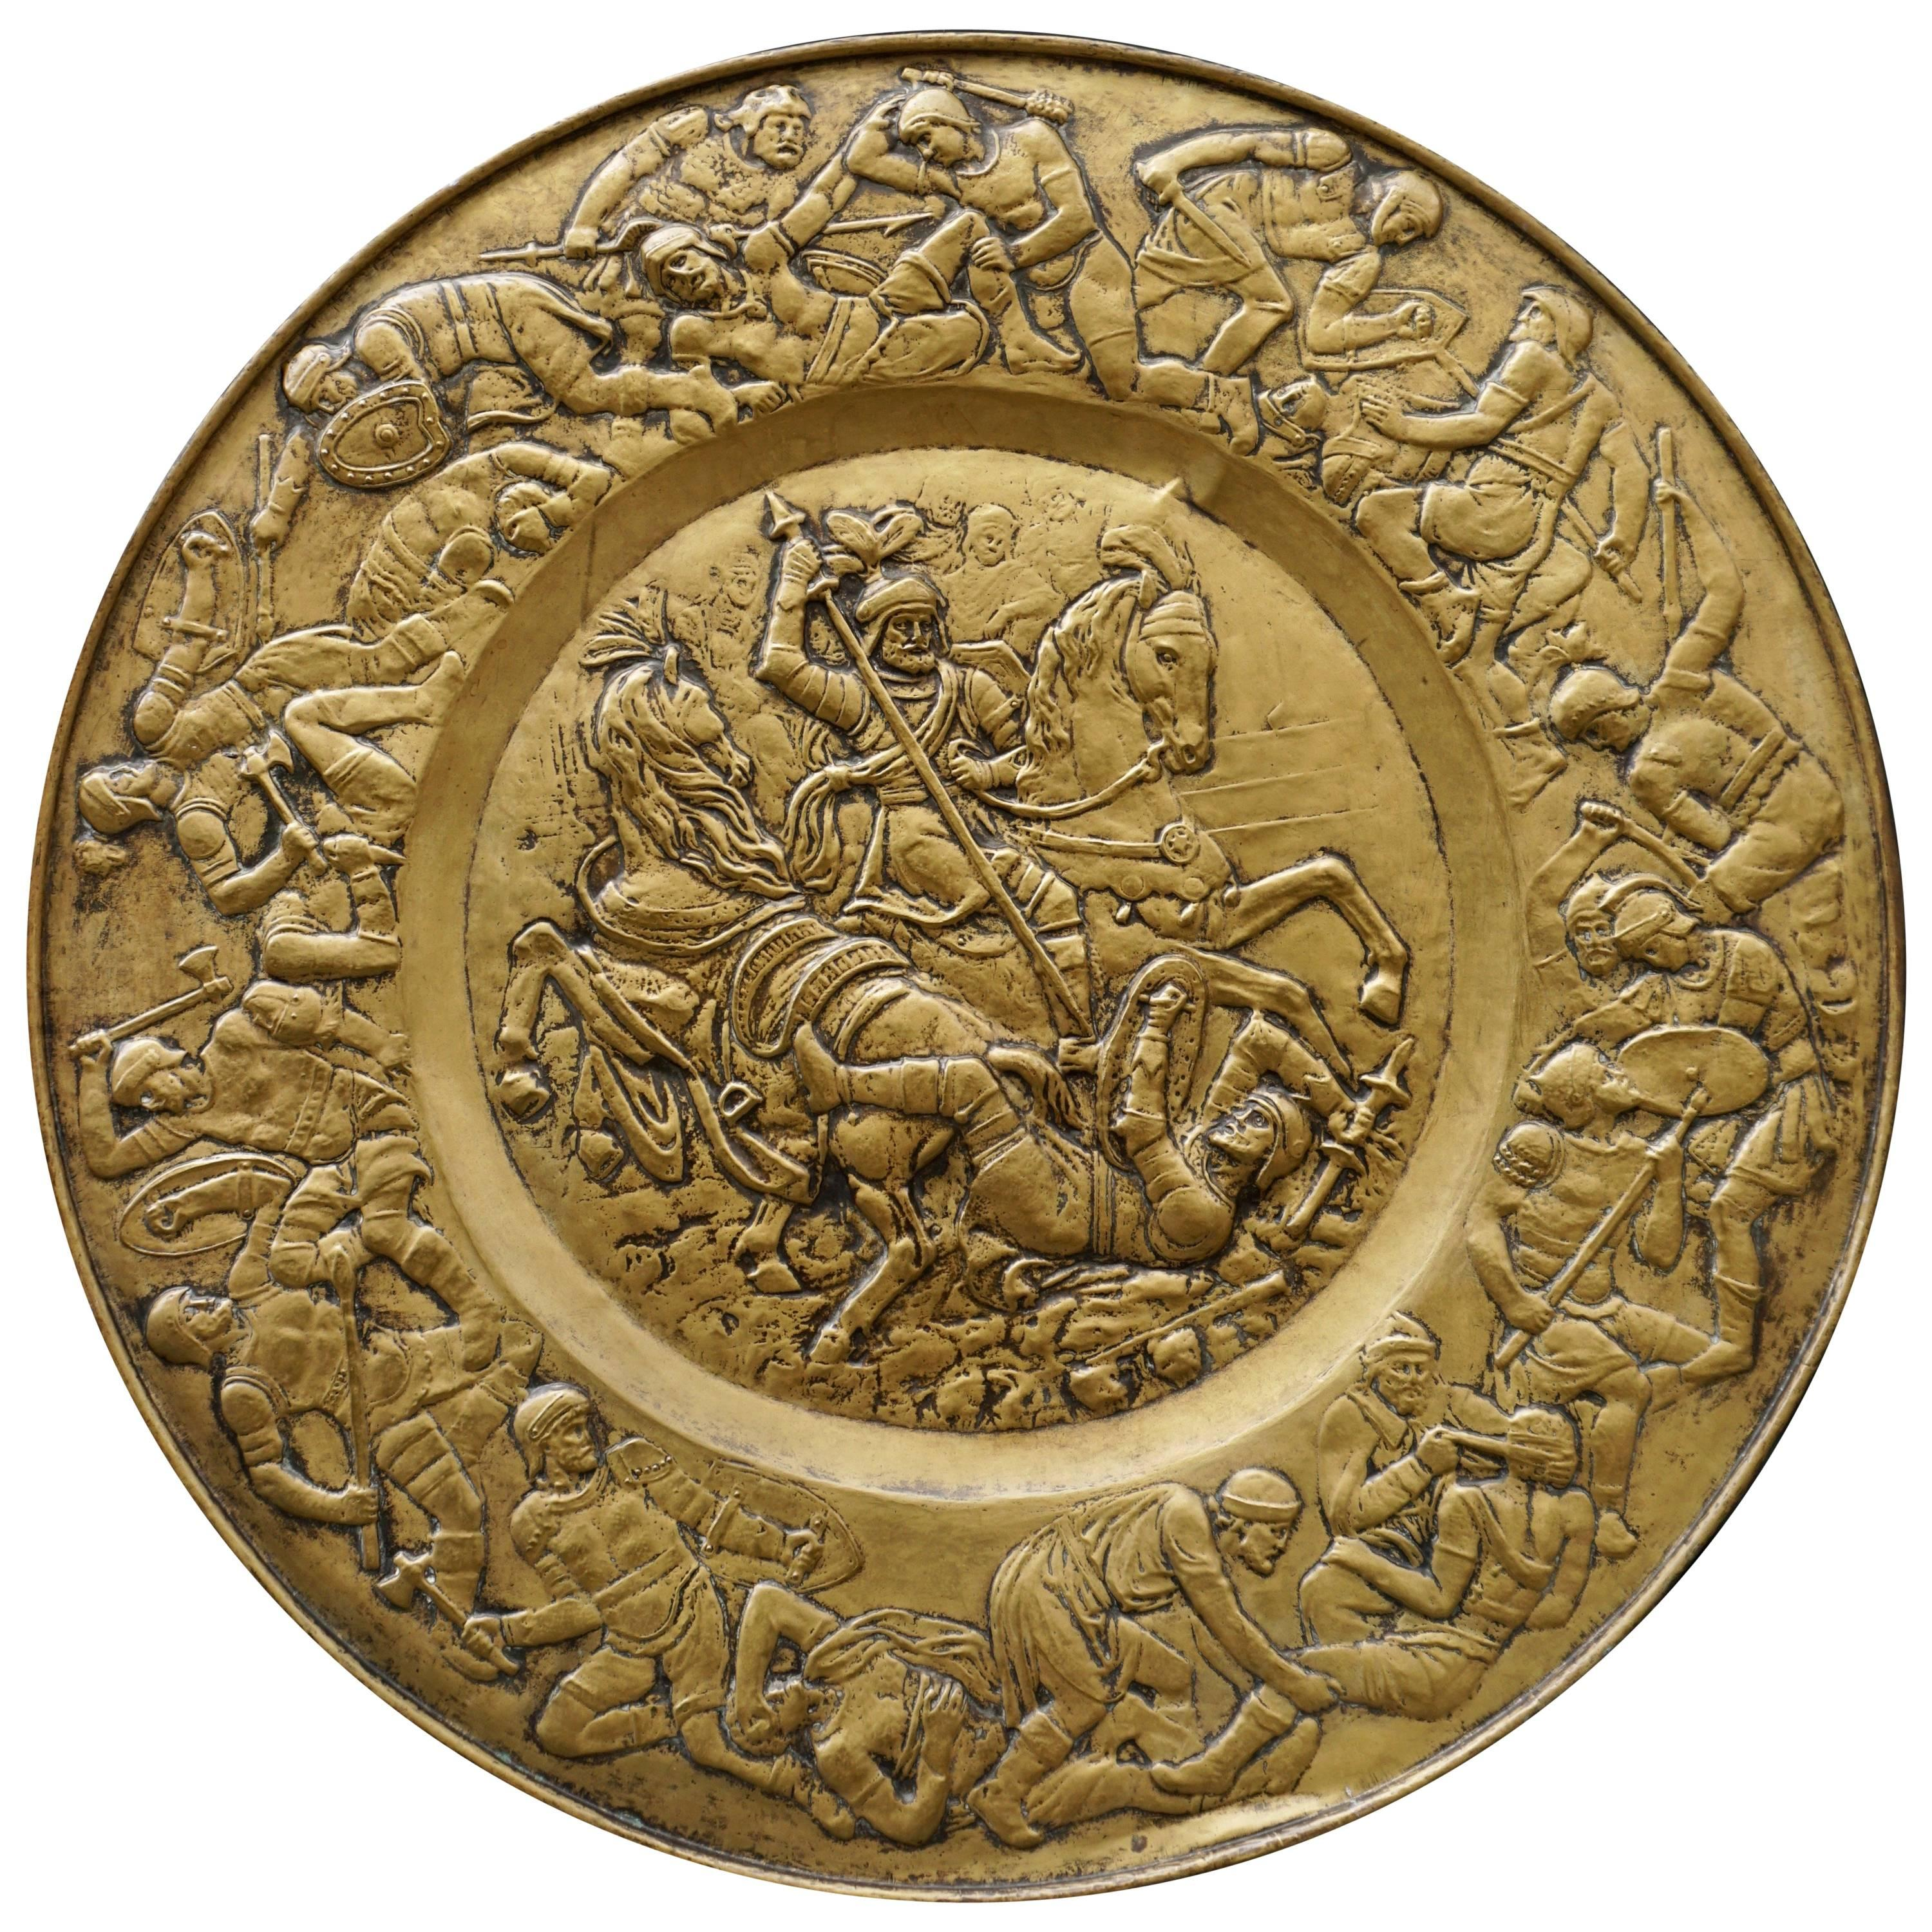 Hammered Copper Wall Relief Sculpture with Roman Warriors